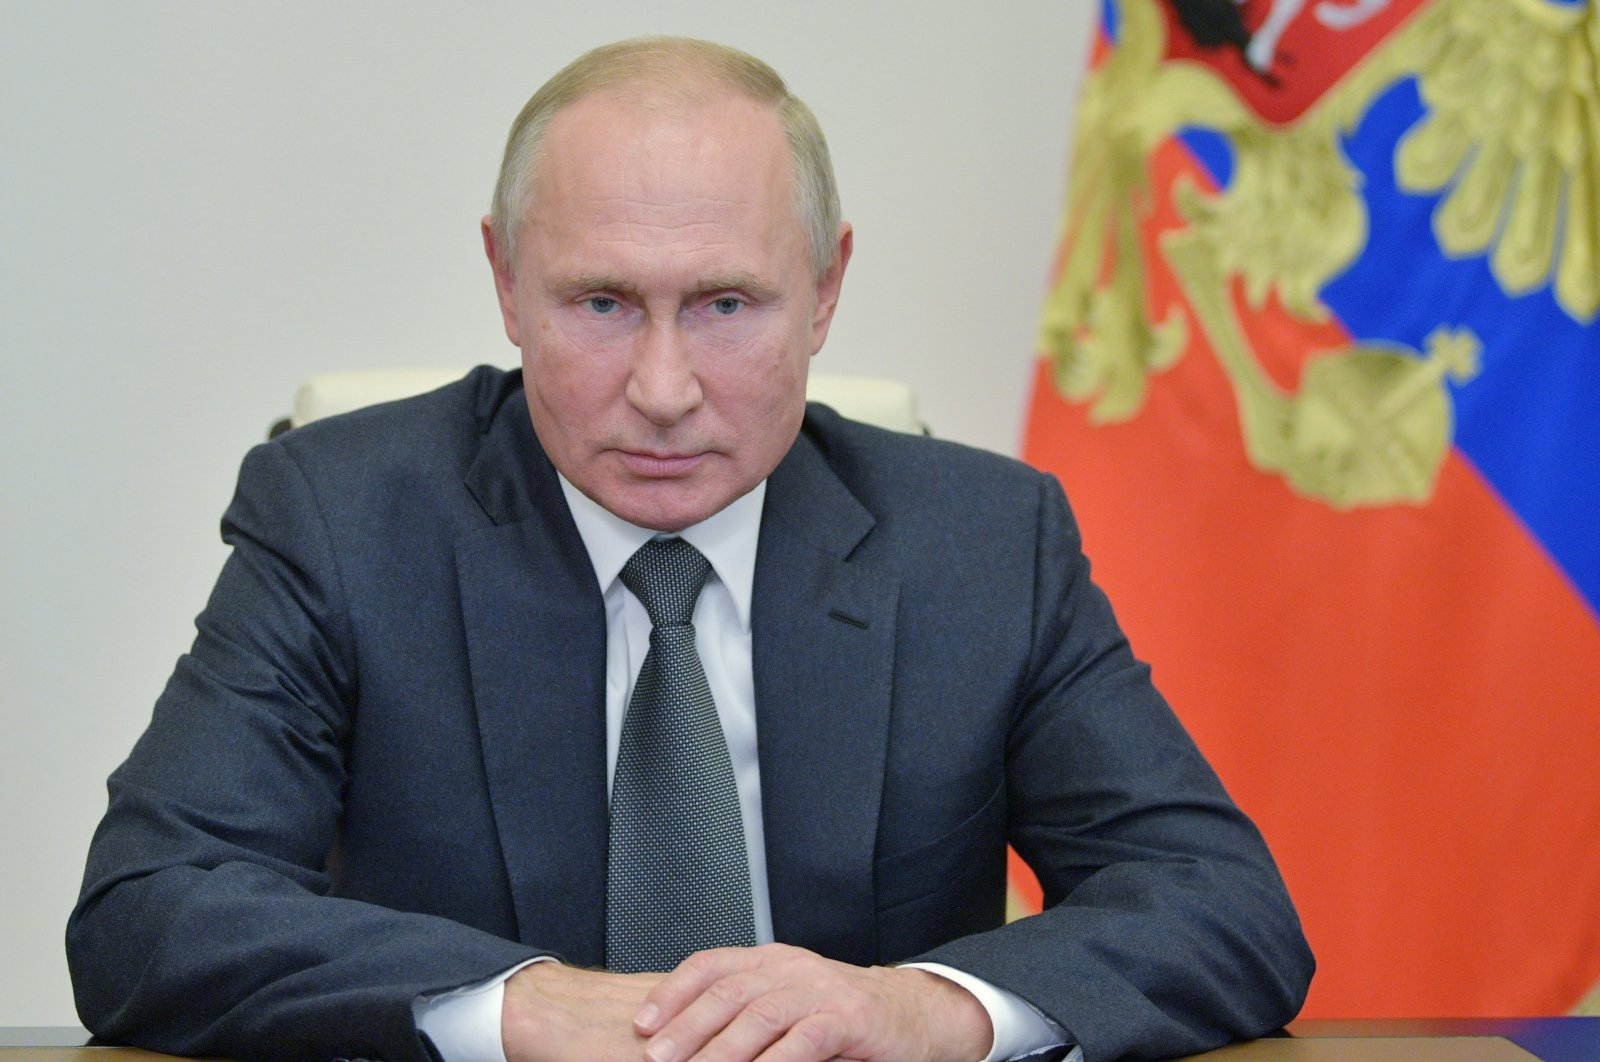 Russian President Vladimir Putin attends a meeting with Chief of the Russian Armed Forces' General Staff Valery Gerasimov, via a video conference call at the Novo-Ogaryovo state residence, outside Moscow, Russia on Oct. 7, 2020. (Reuters Photo)